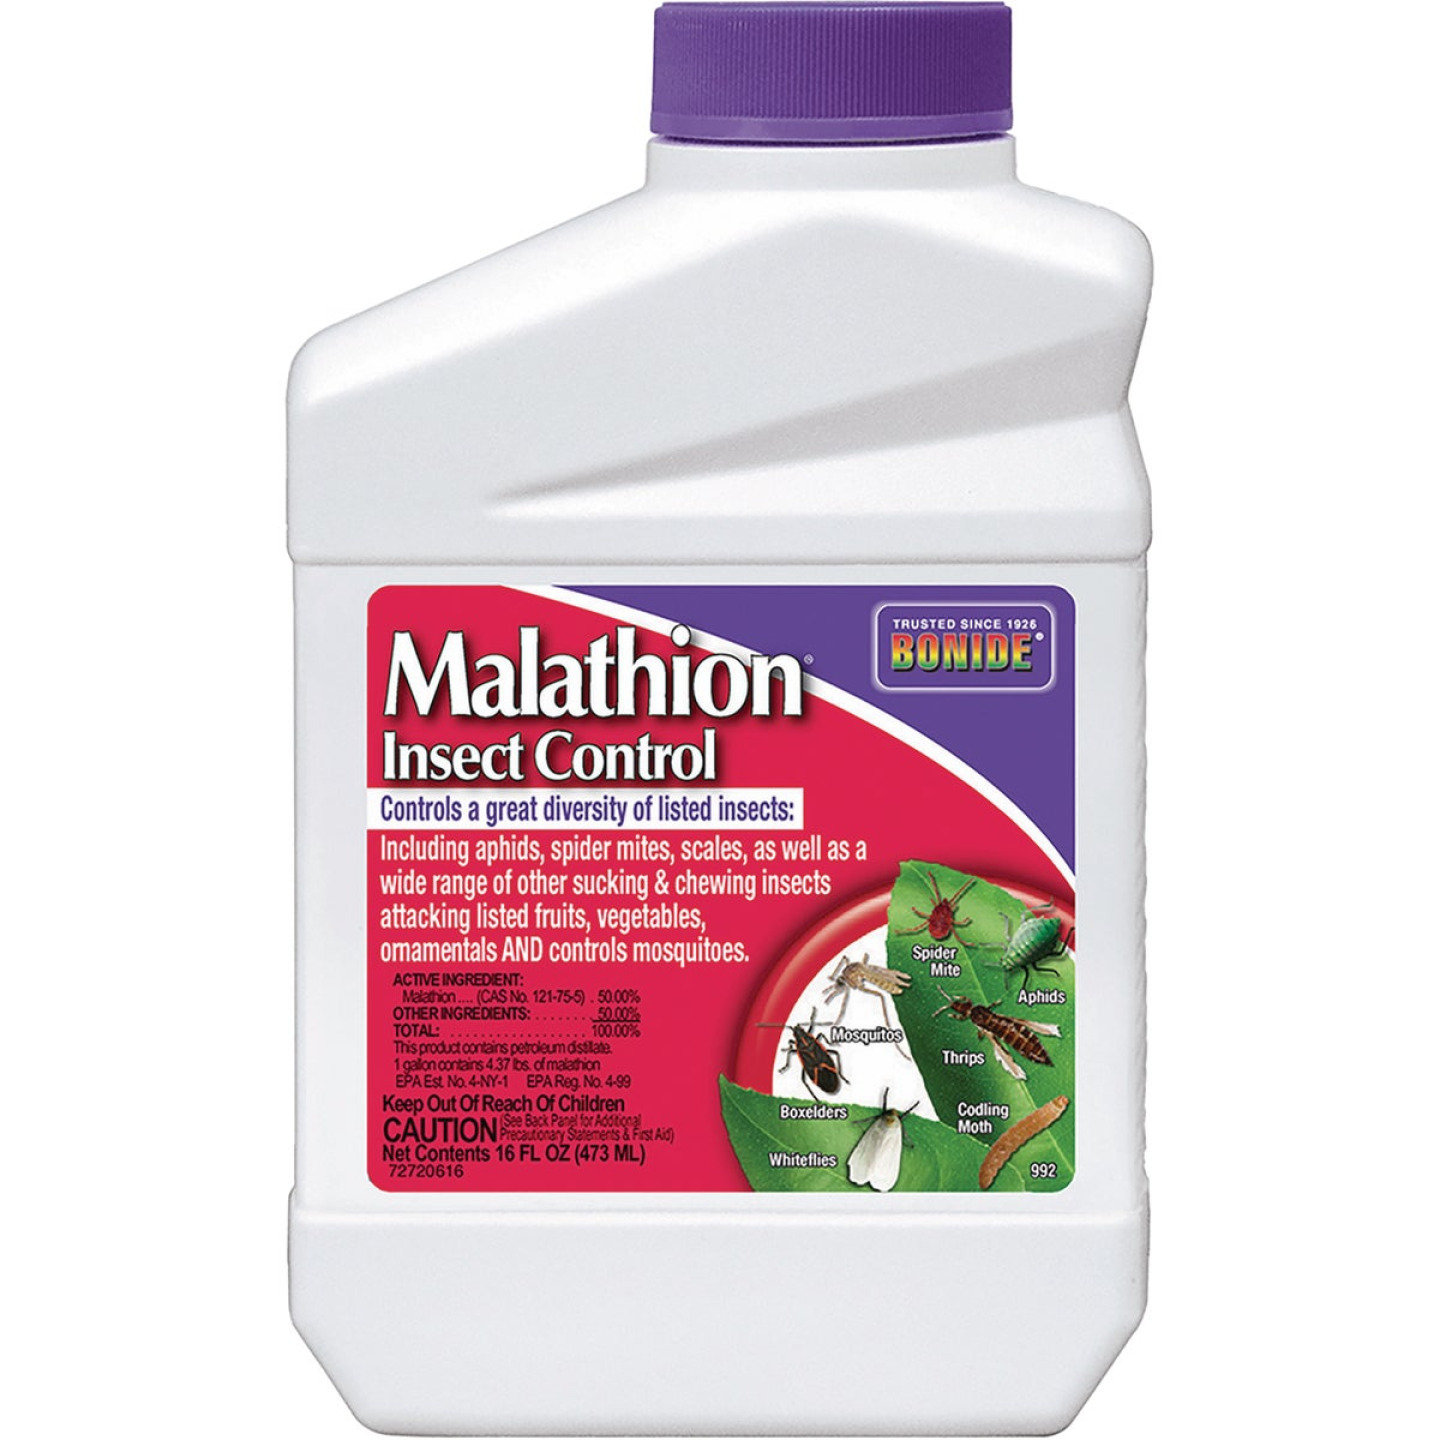 Bonide 1 Pt. Concentrate Malathion Insect Killer Image 1